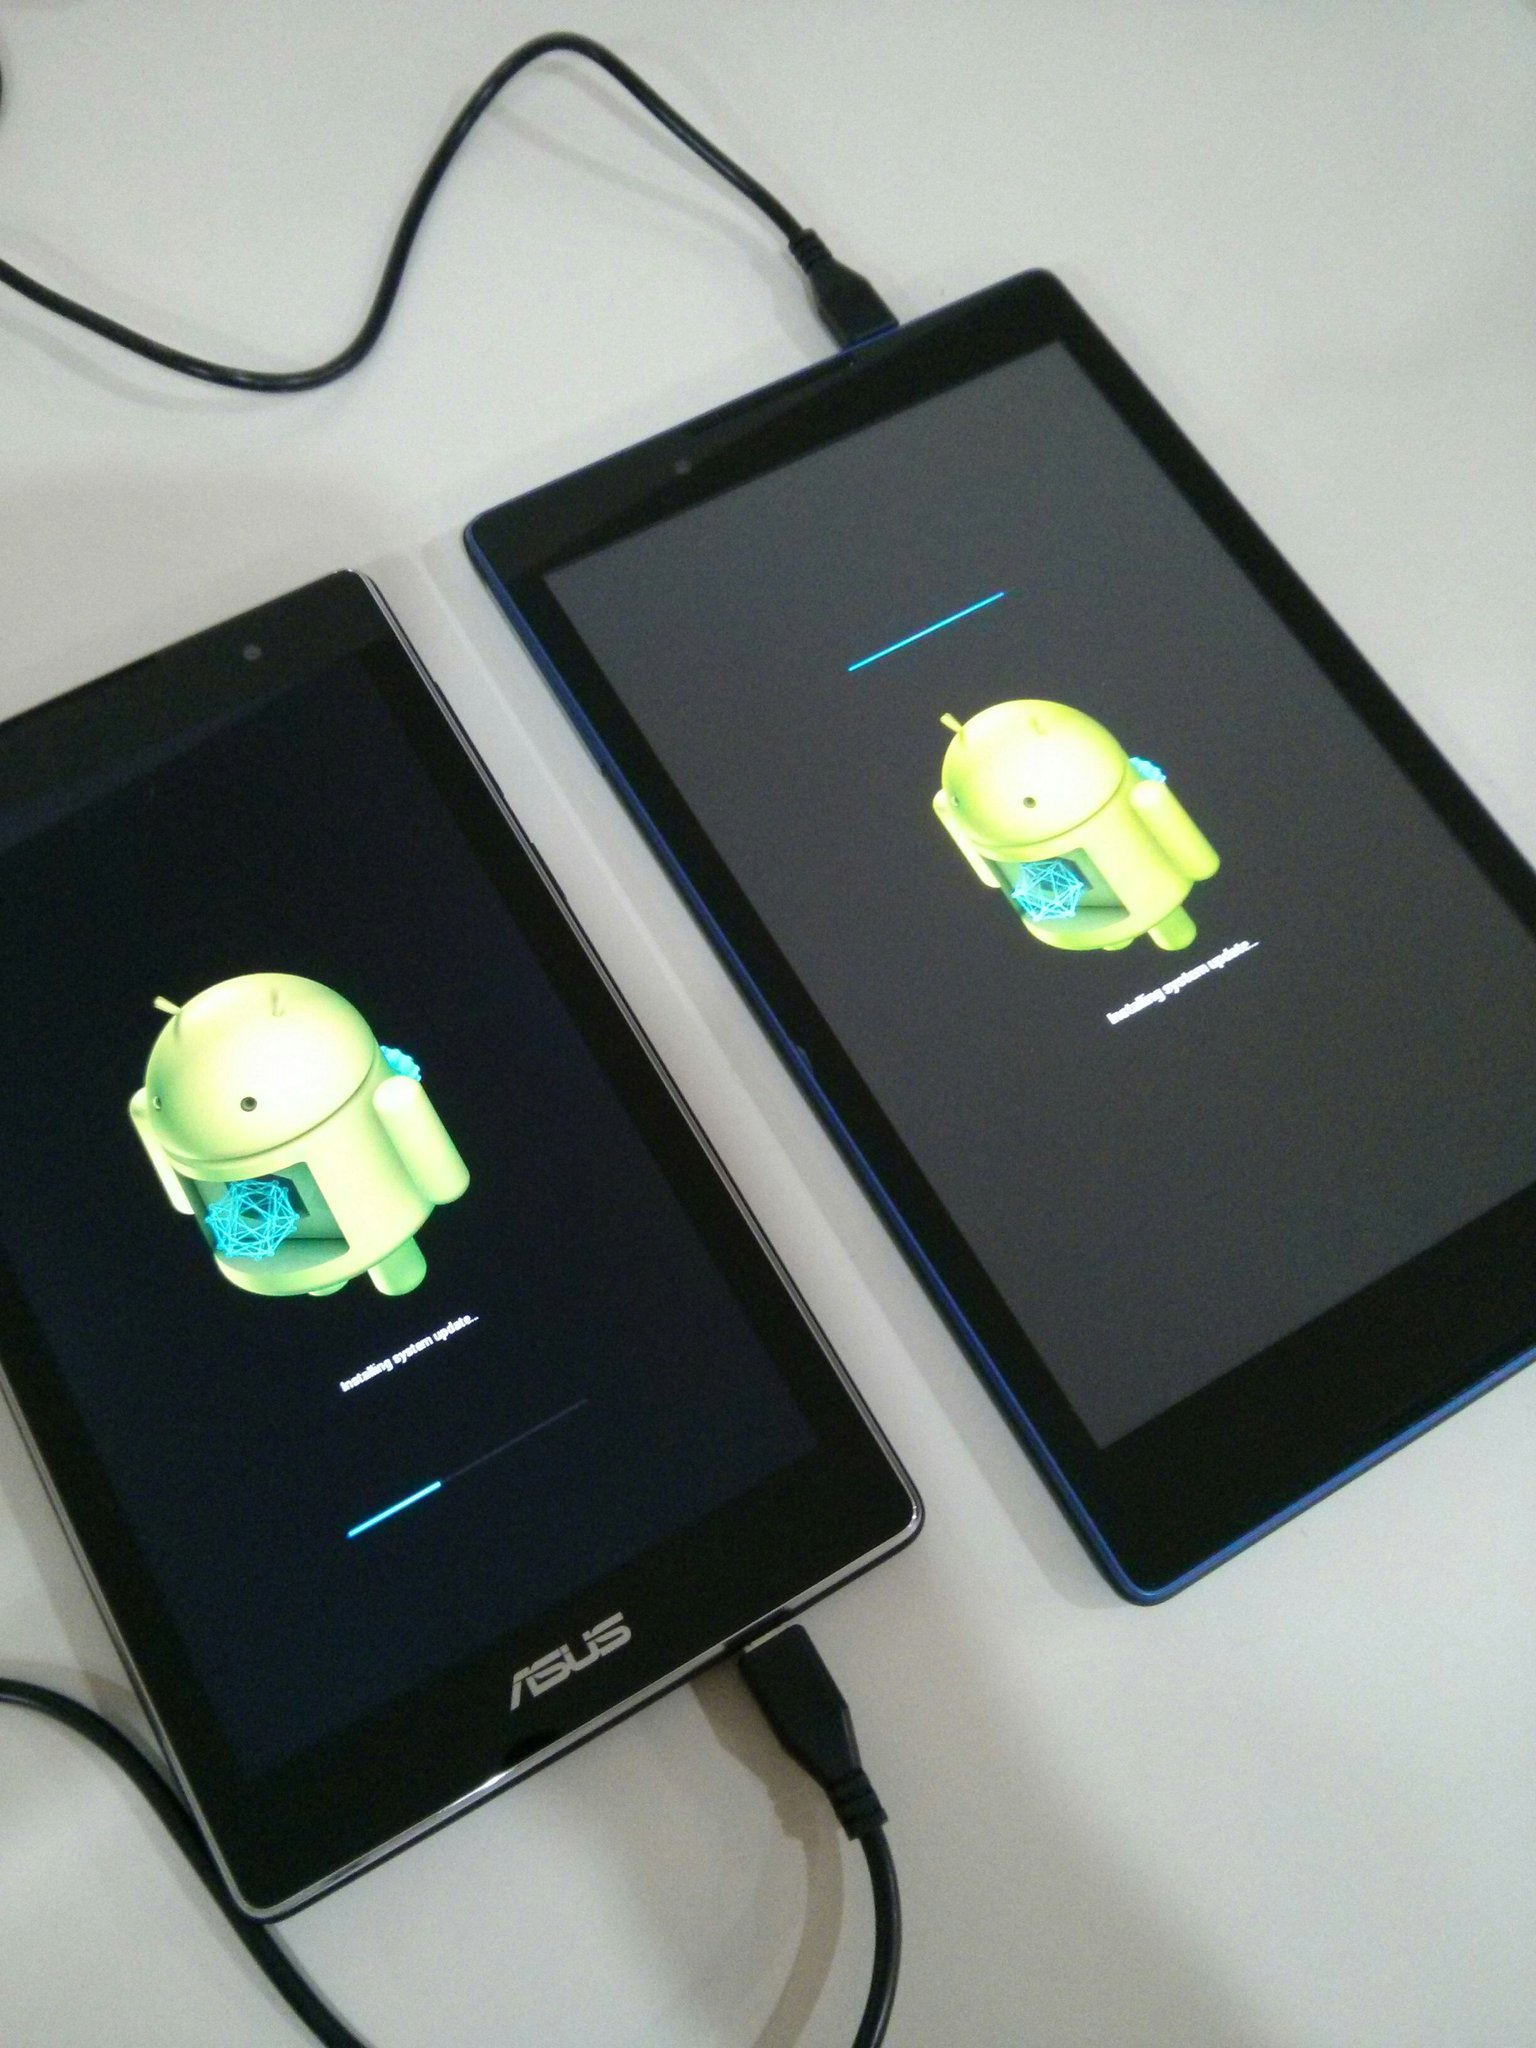 Global Cross and our partners in Ethiopia tested 6-7 different specification sets before arriving at the final tablet.